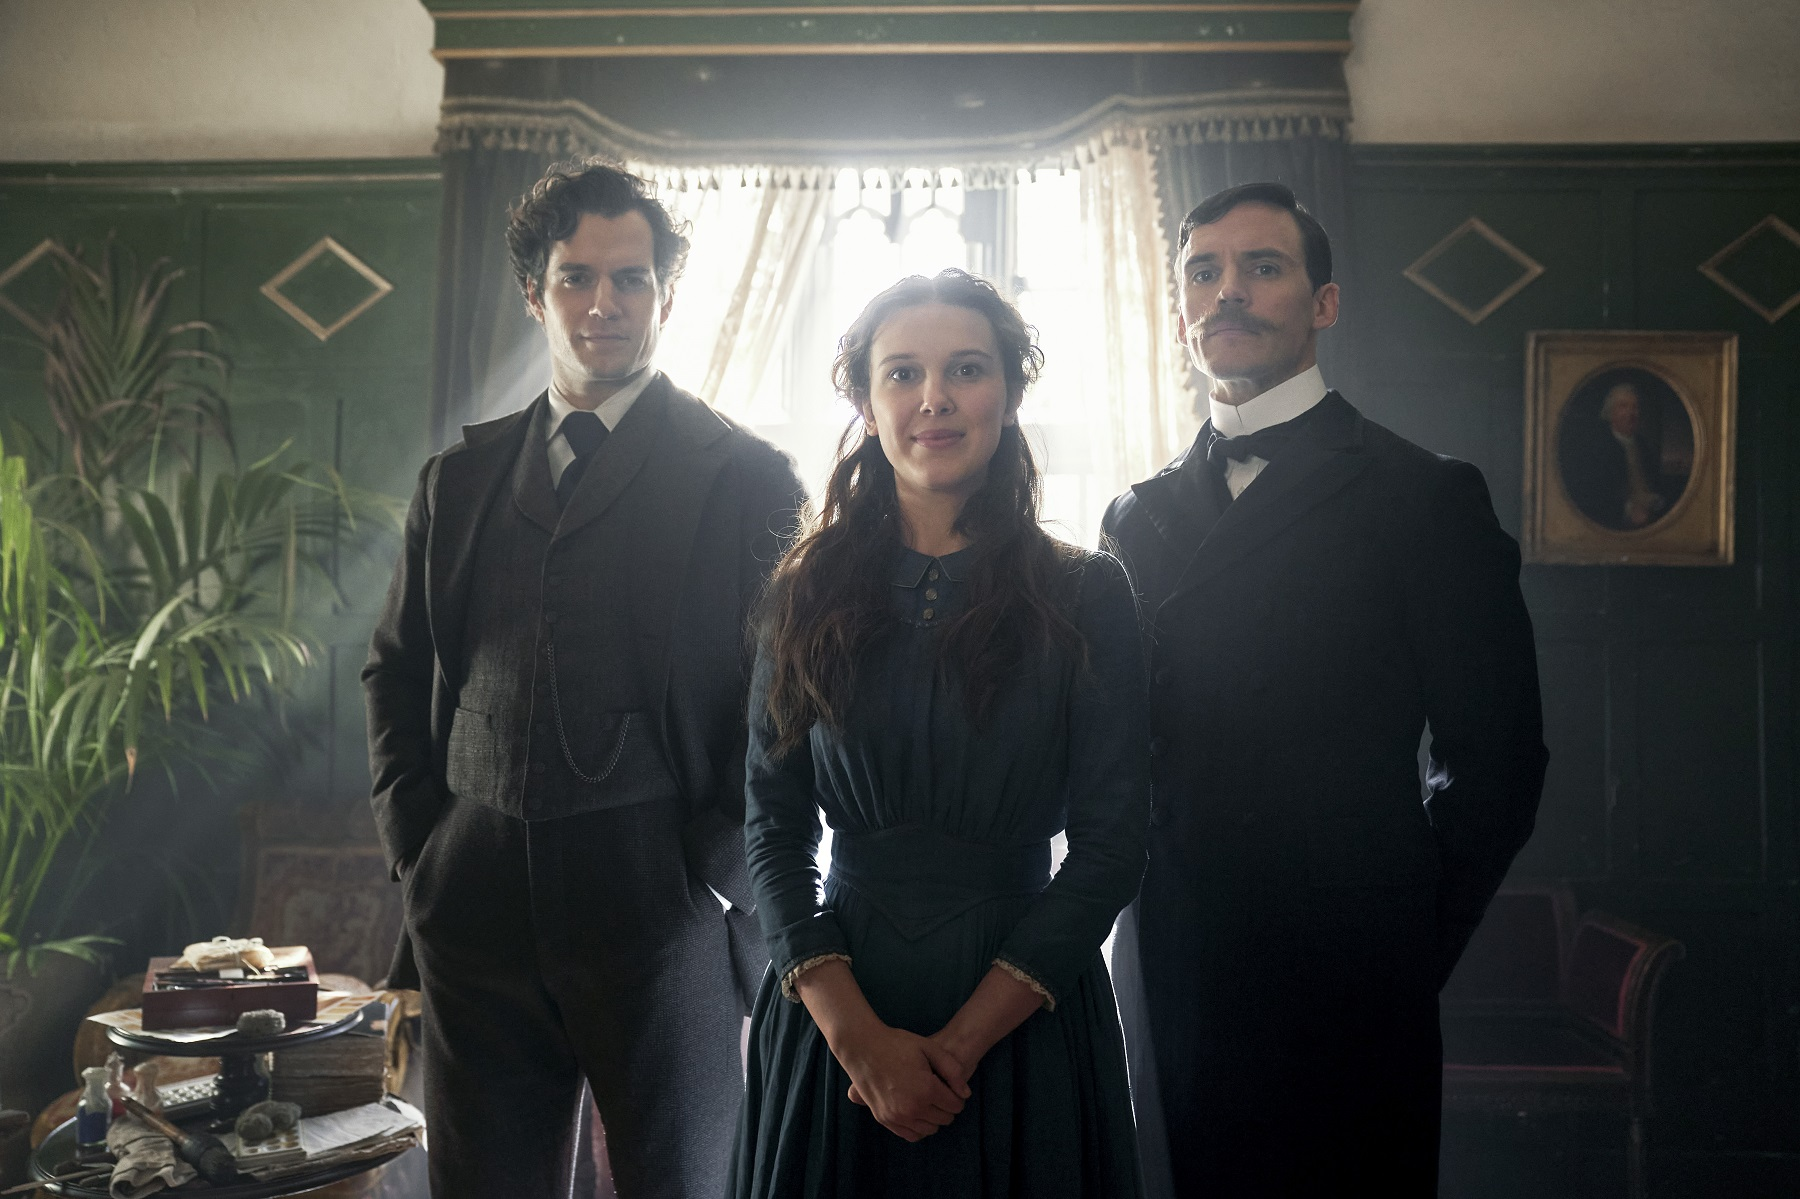 Henry Cavill, Millie Bobby Brown, and Sam Claflin in 'Enola Holmes'